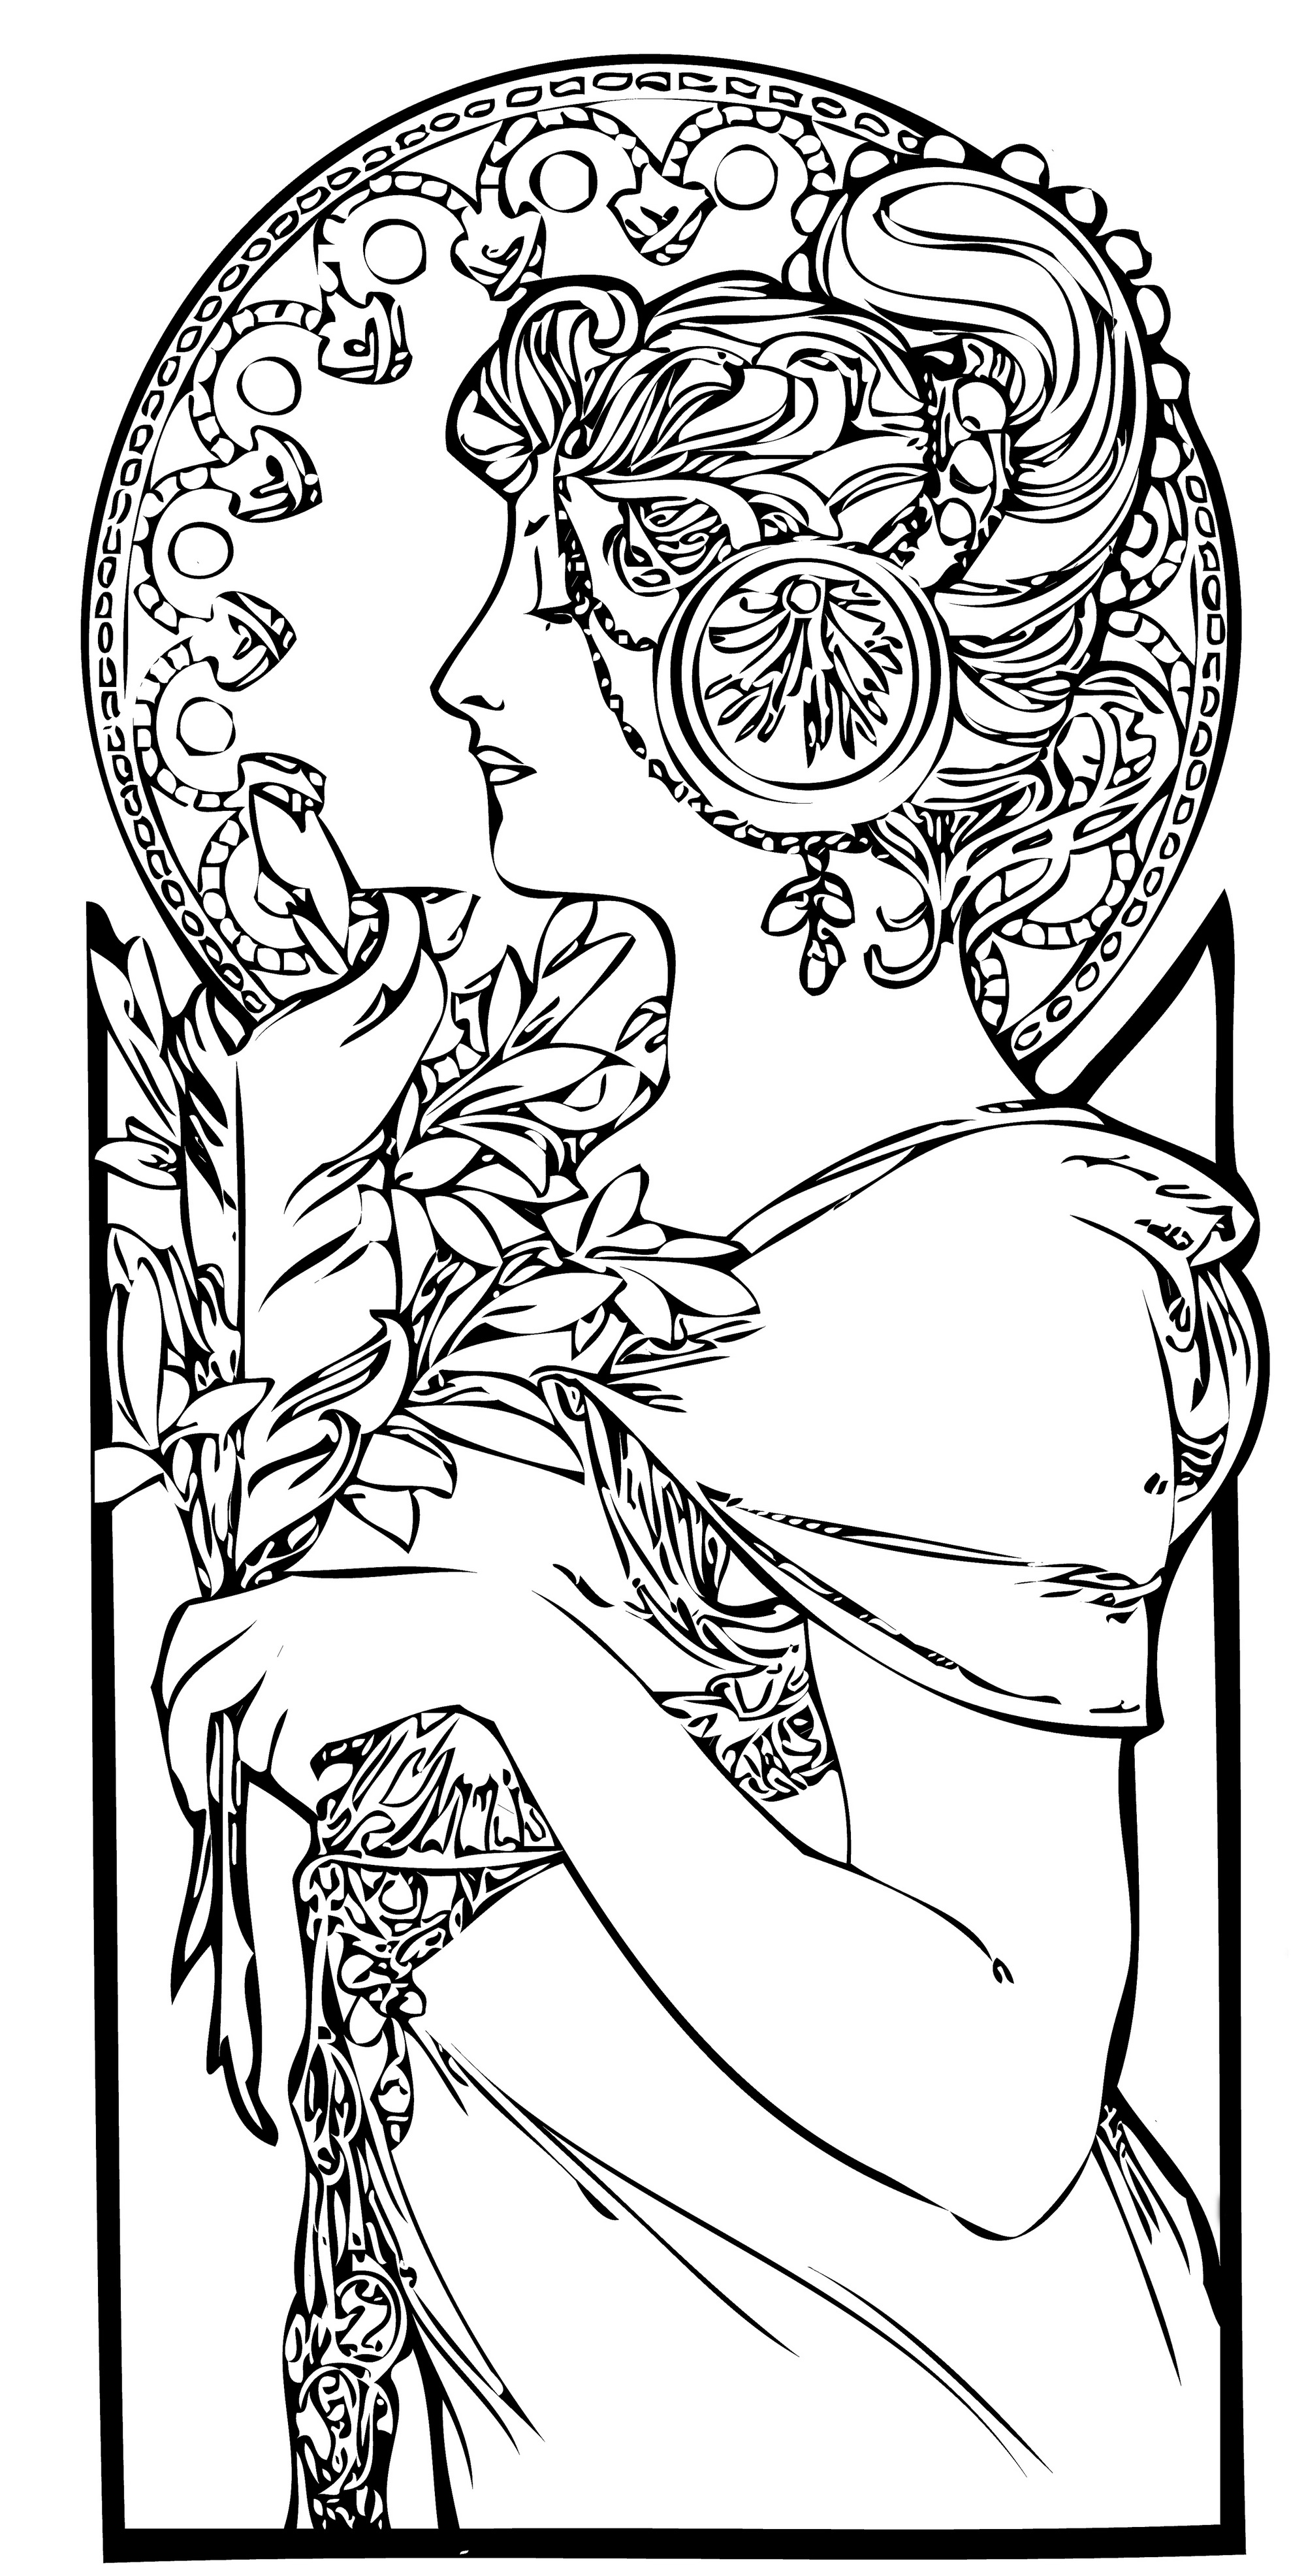 Line St Jean Art Et Design : Line art nouveau by e designer on deviantart